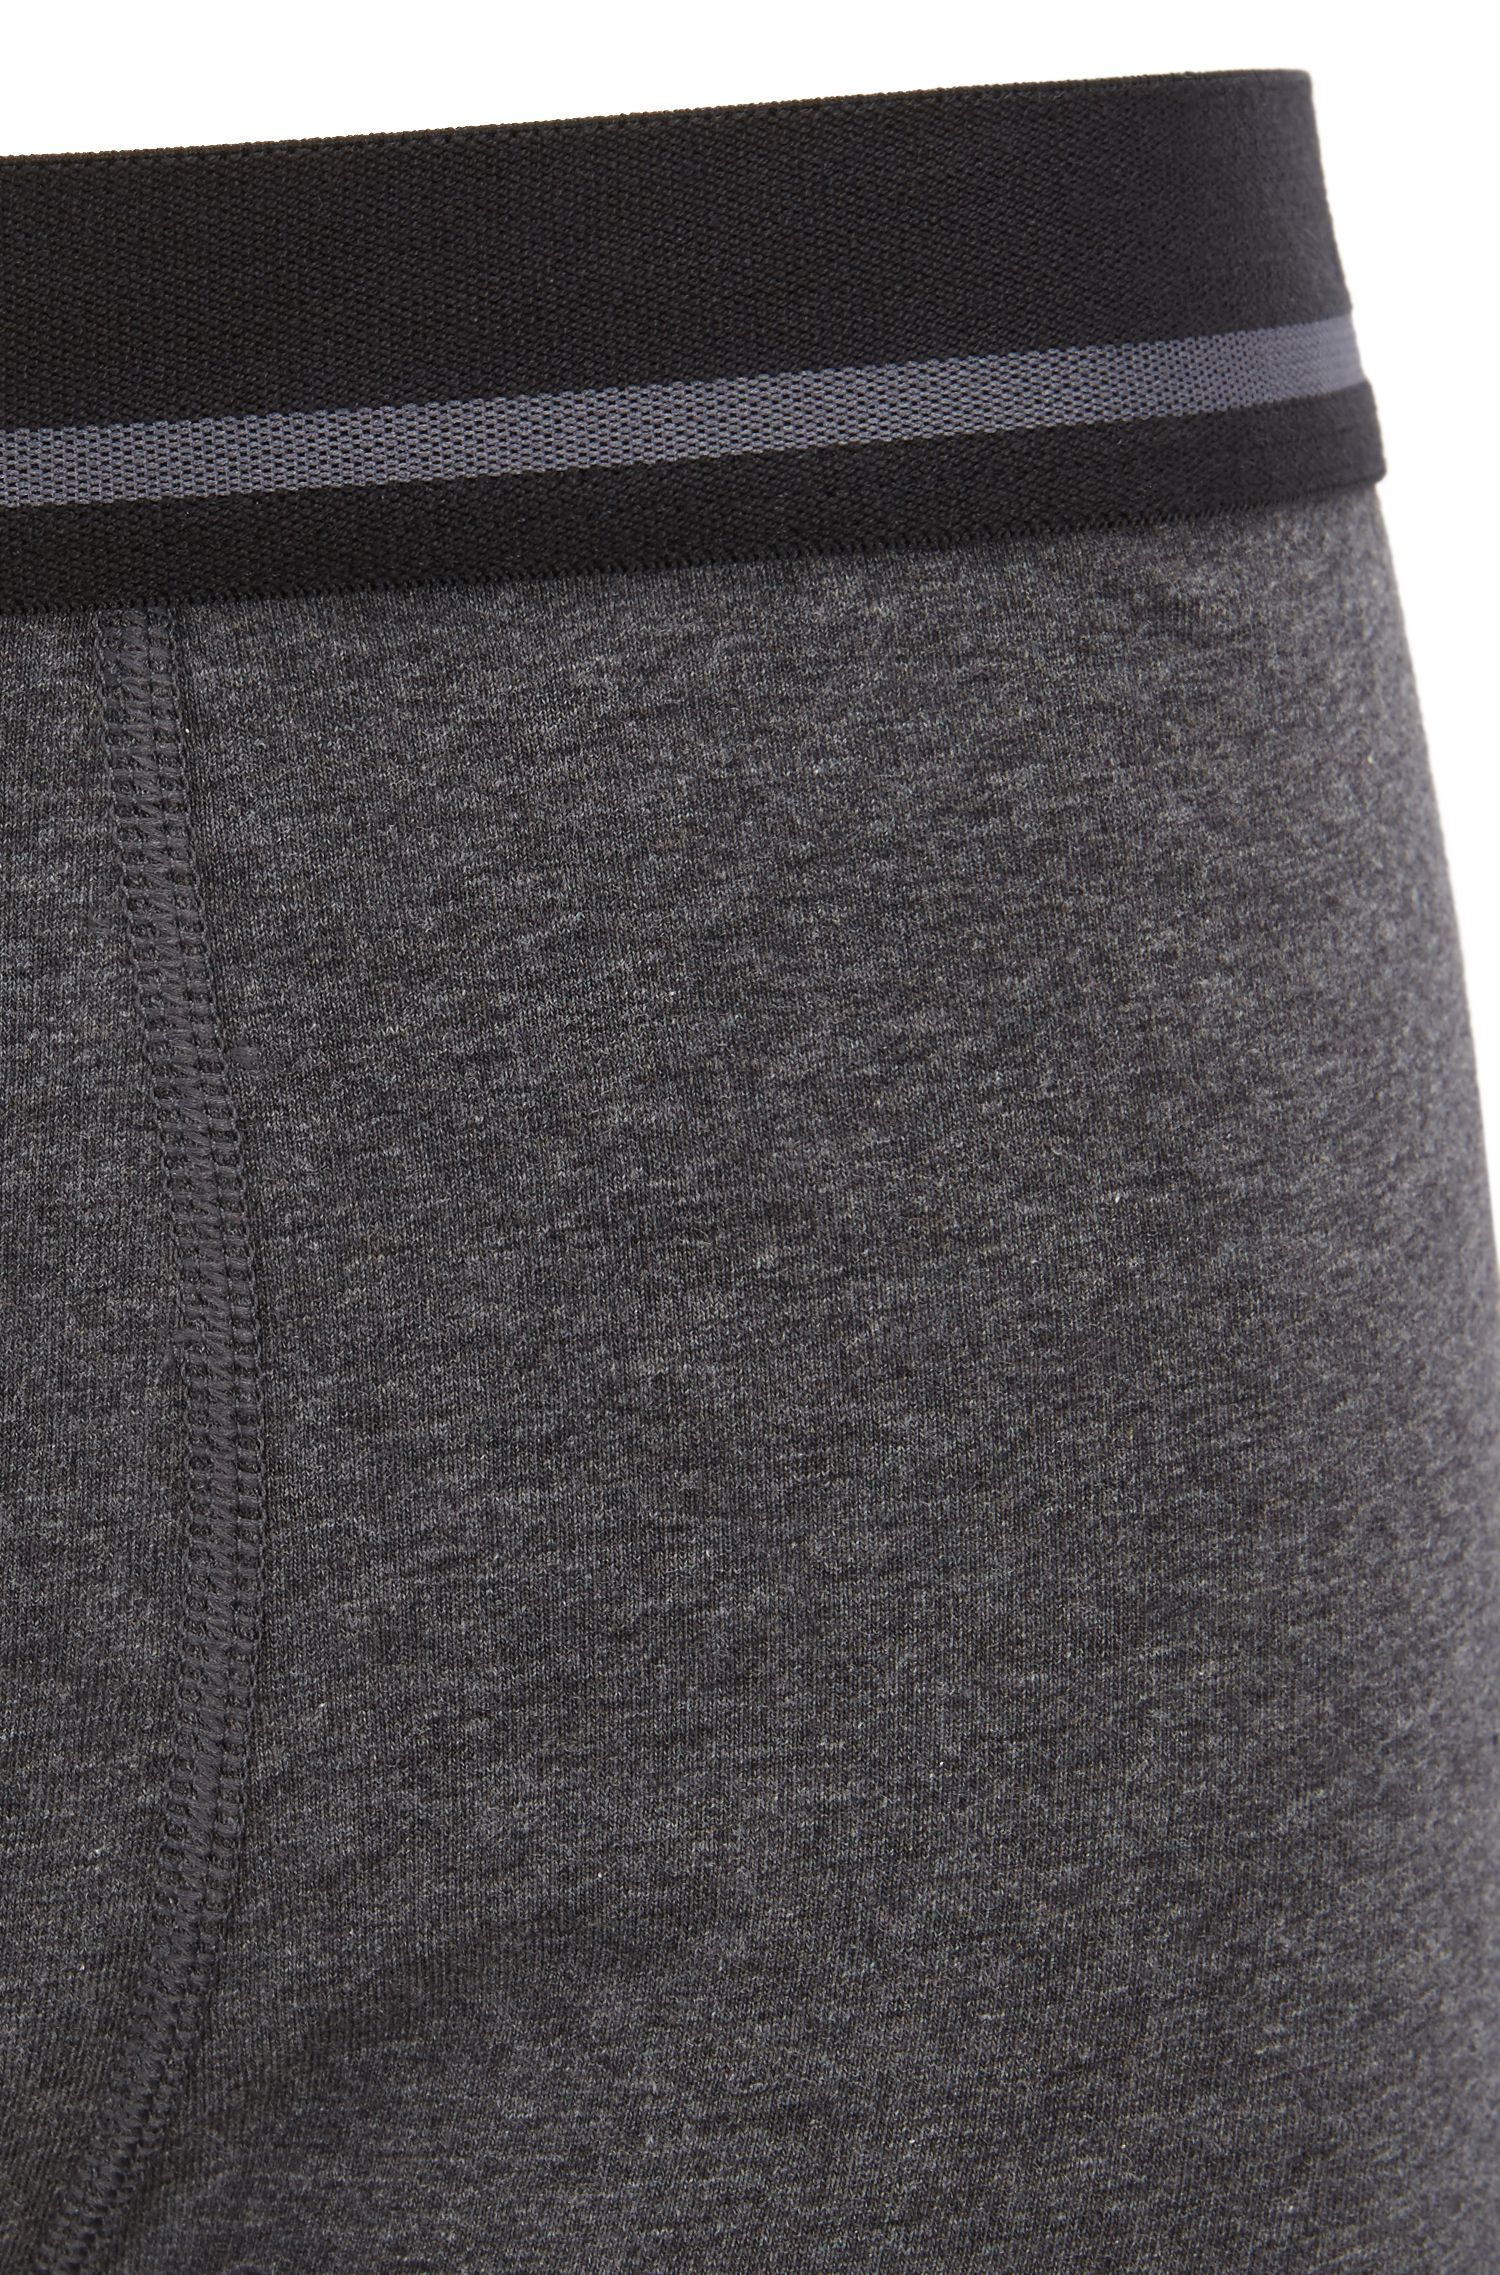 Boxershorts aus Single Jersey, Grau